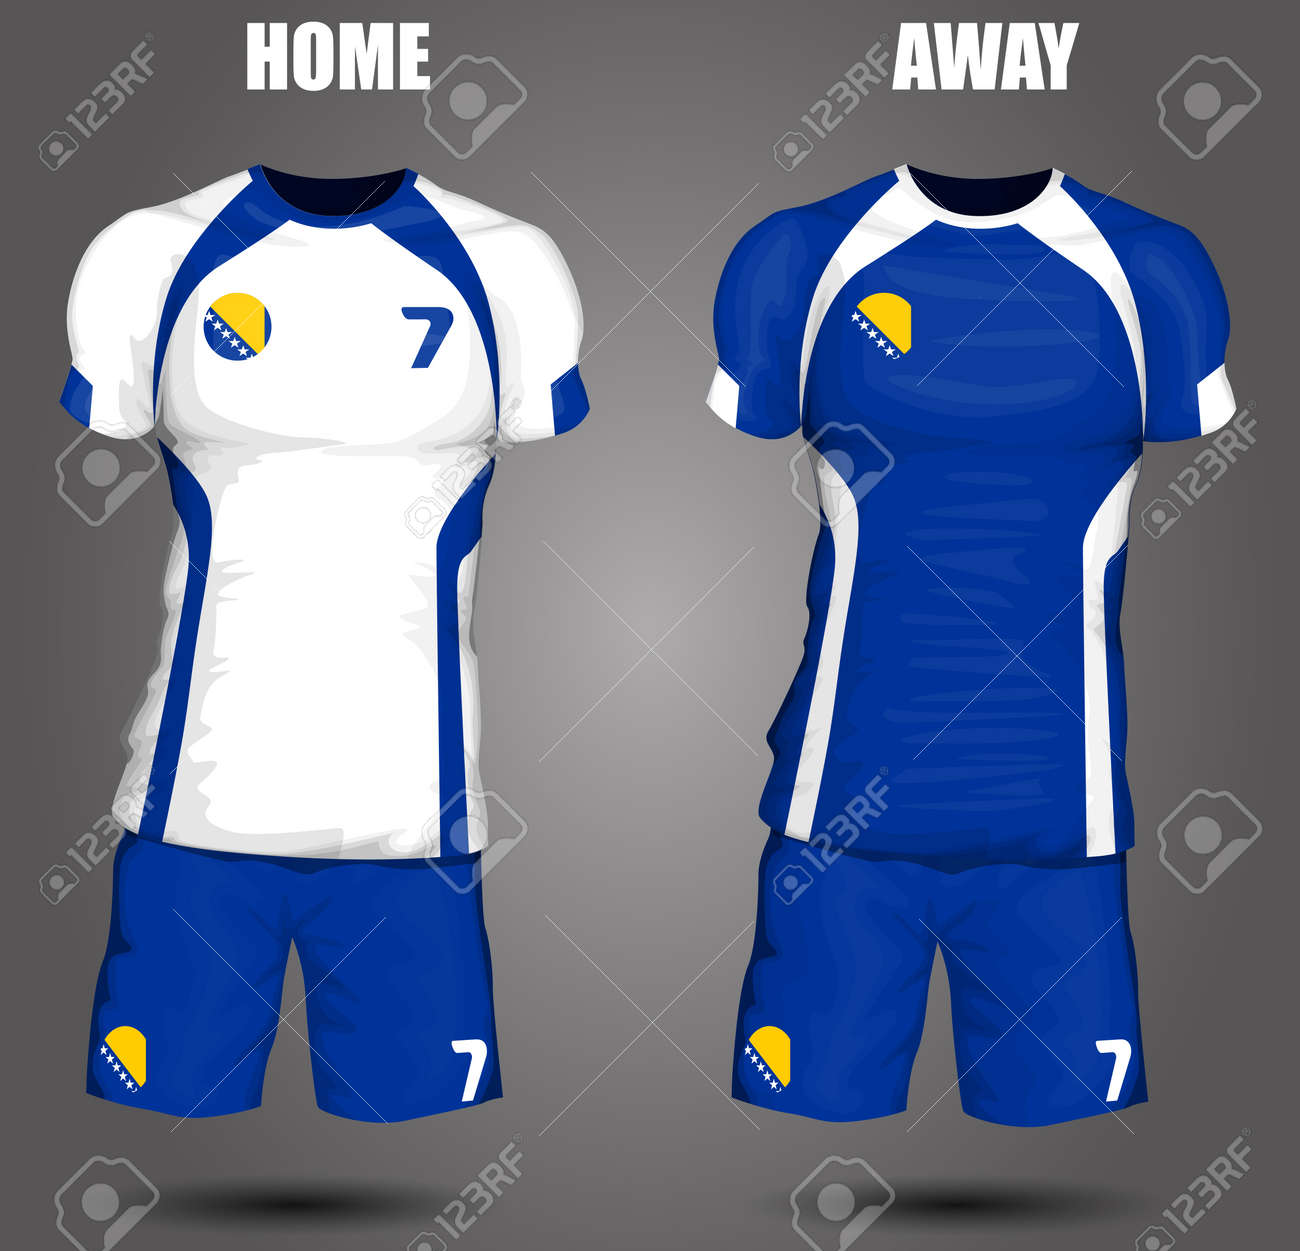 ed0bef26a Bosnia and Herzegovina soccer jersey Stock Vector - 28036507